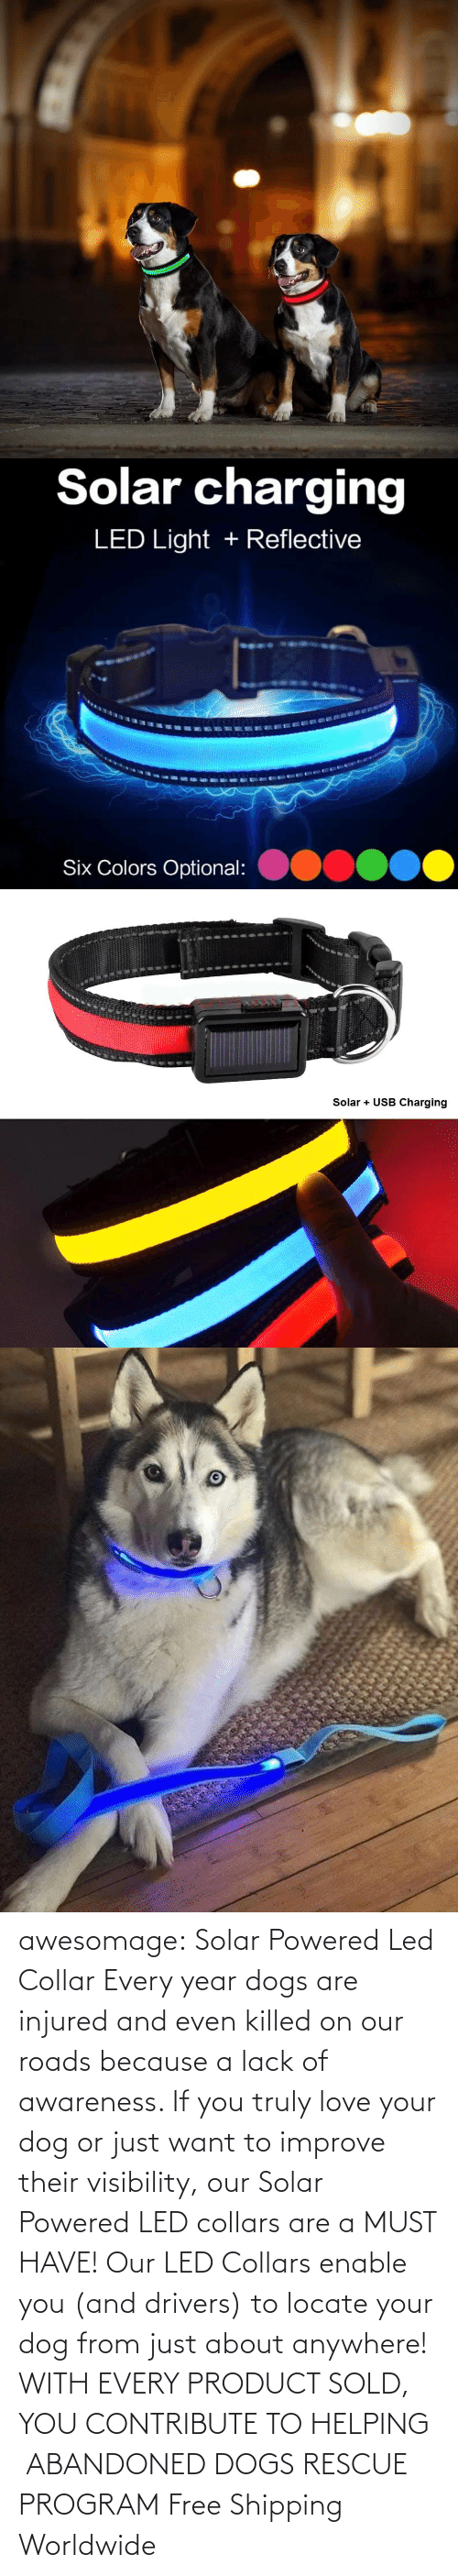 Improve: awesomage: Solar Powered Led Collar   Every year dogs are injured and even killed on our roads because a lack of awareness. If you truly love your dog or just want to improve their visibility, our Solar Powered LED collars are a MUST HAVE!   Our LED Collars enable you (and drivers) to locate your dog from just about anywhere!     WITH EVERY PRODUCT SOLD, YOU CONTRIBUTE TO HELPING ABANDONED DOGS RESCUE PROGRAM     Free Shipping Worldwide